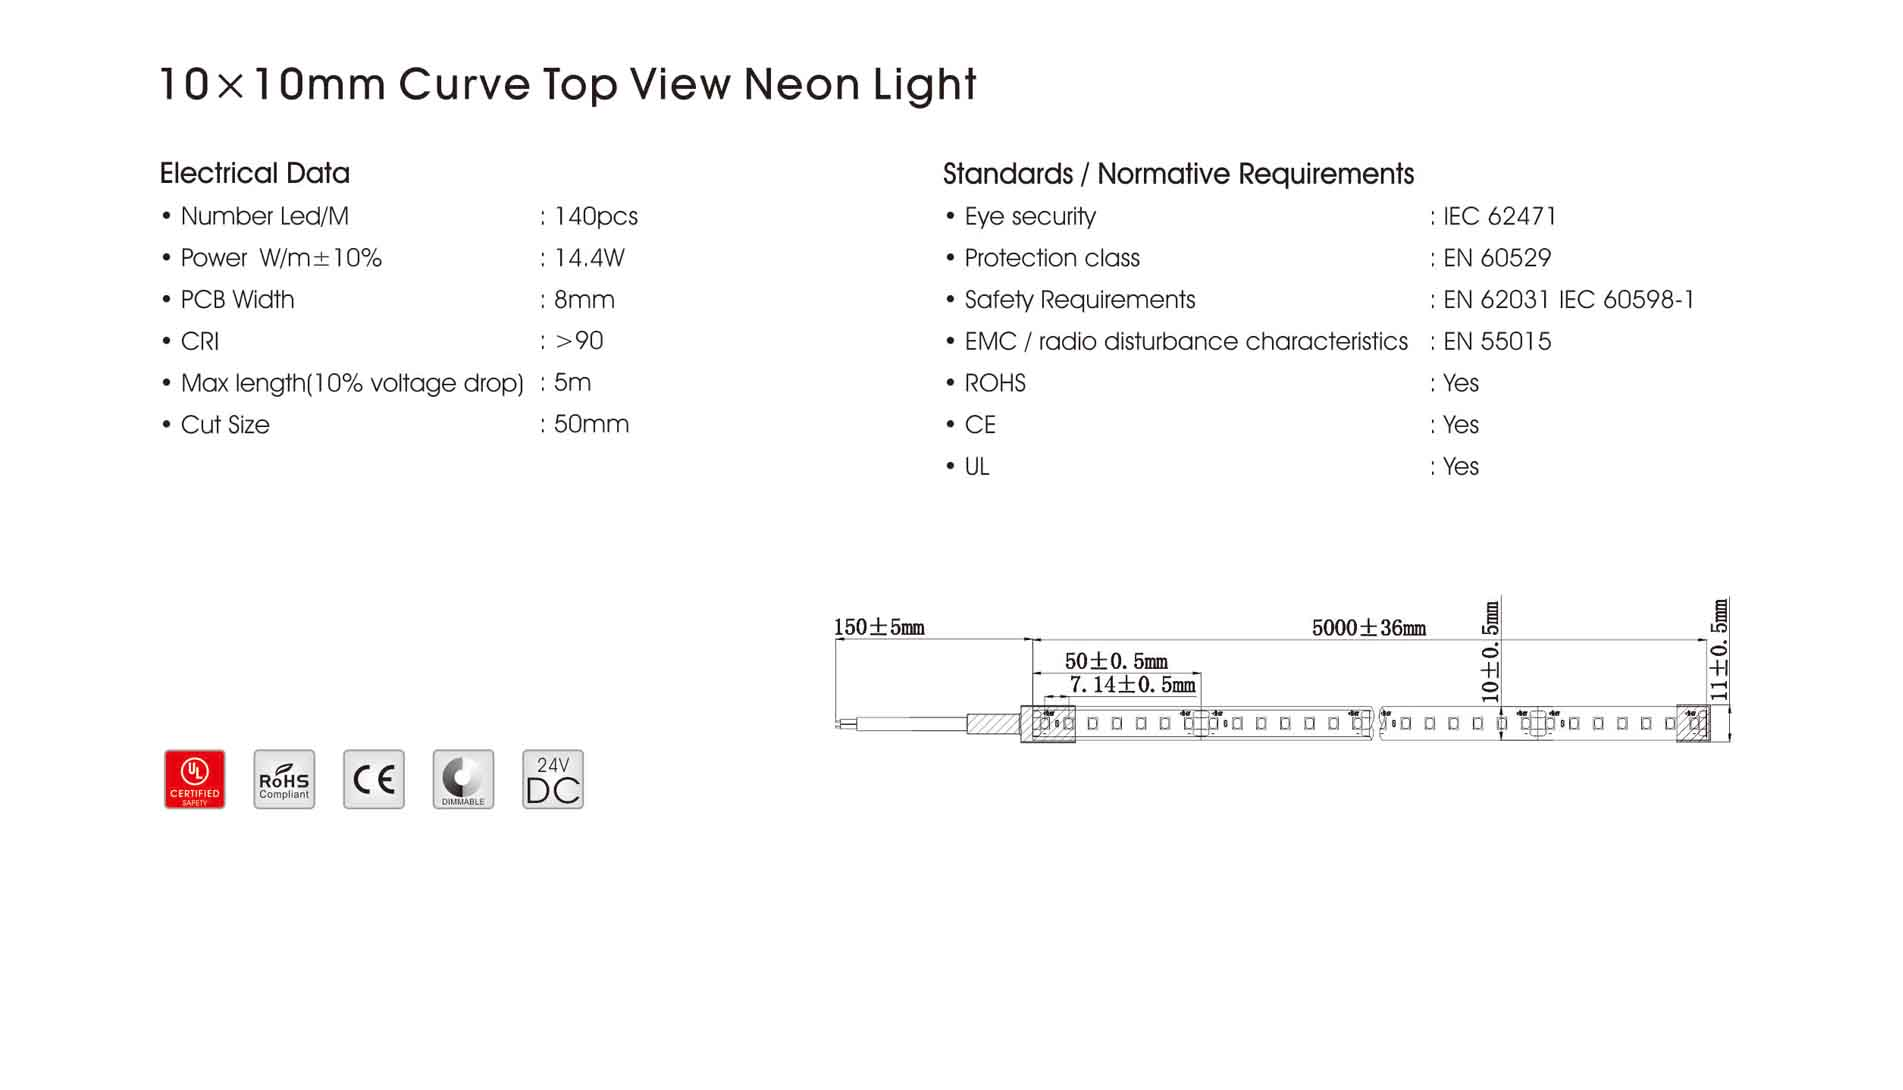 10x10mm curve top view neon light